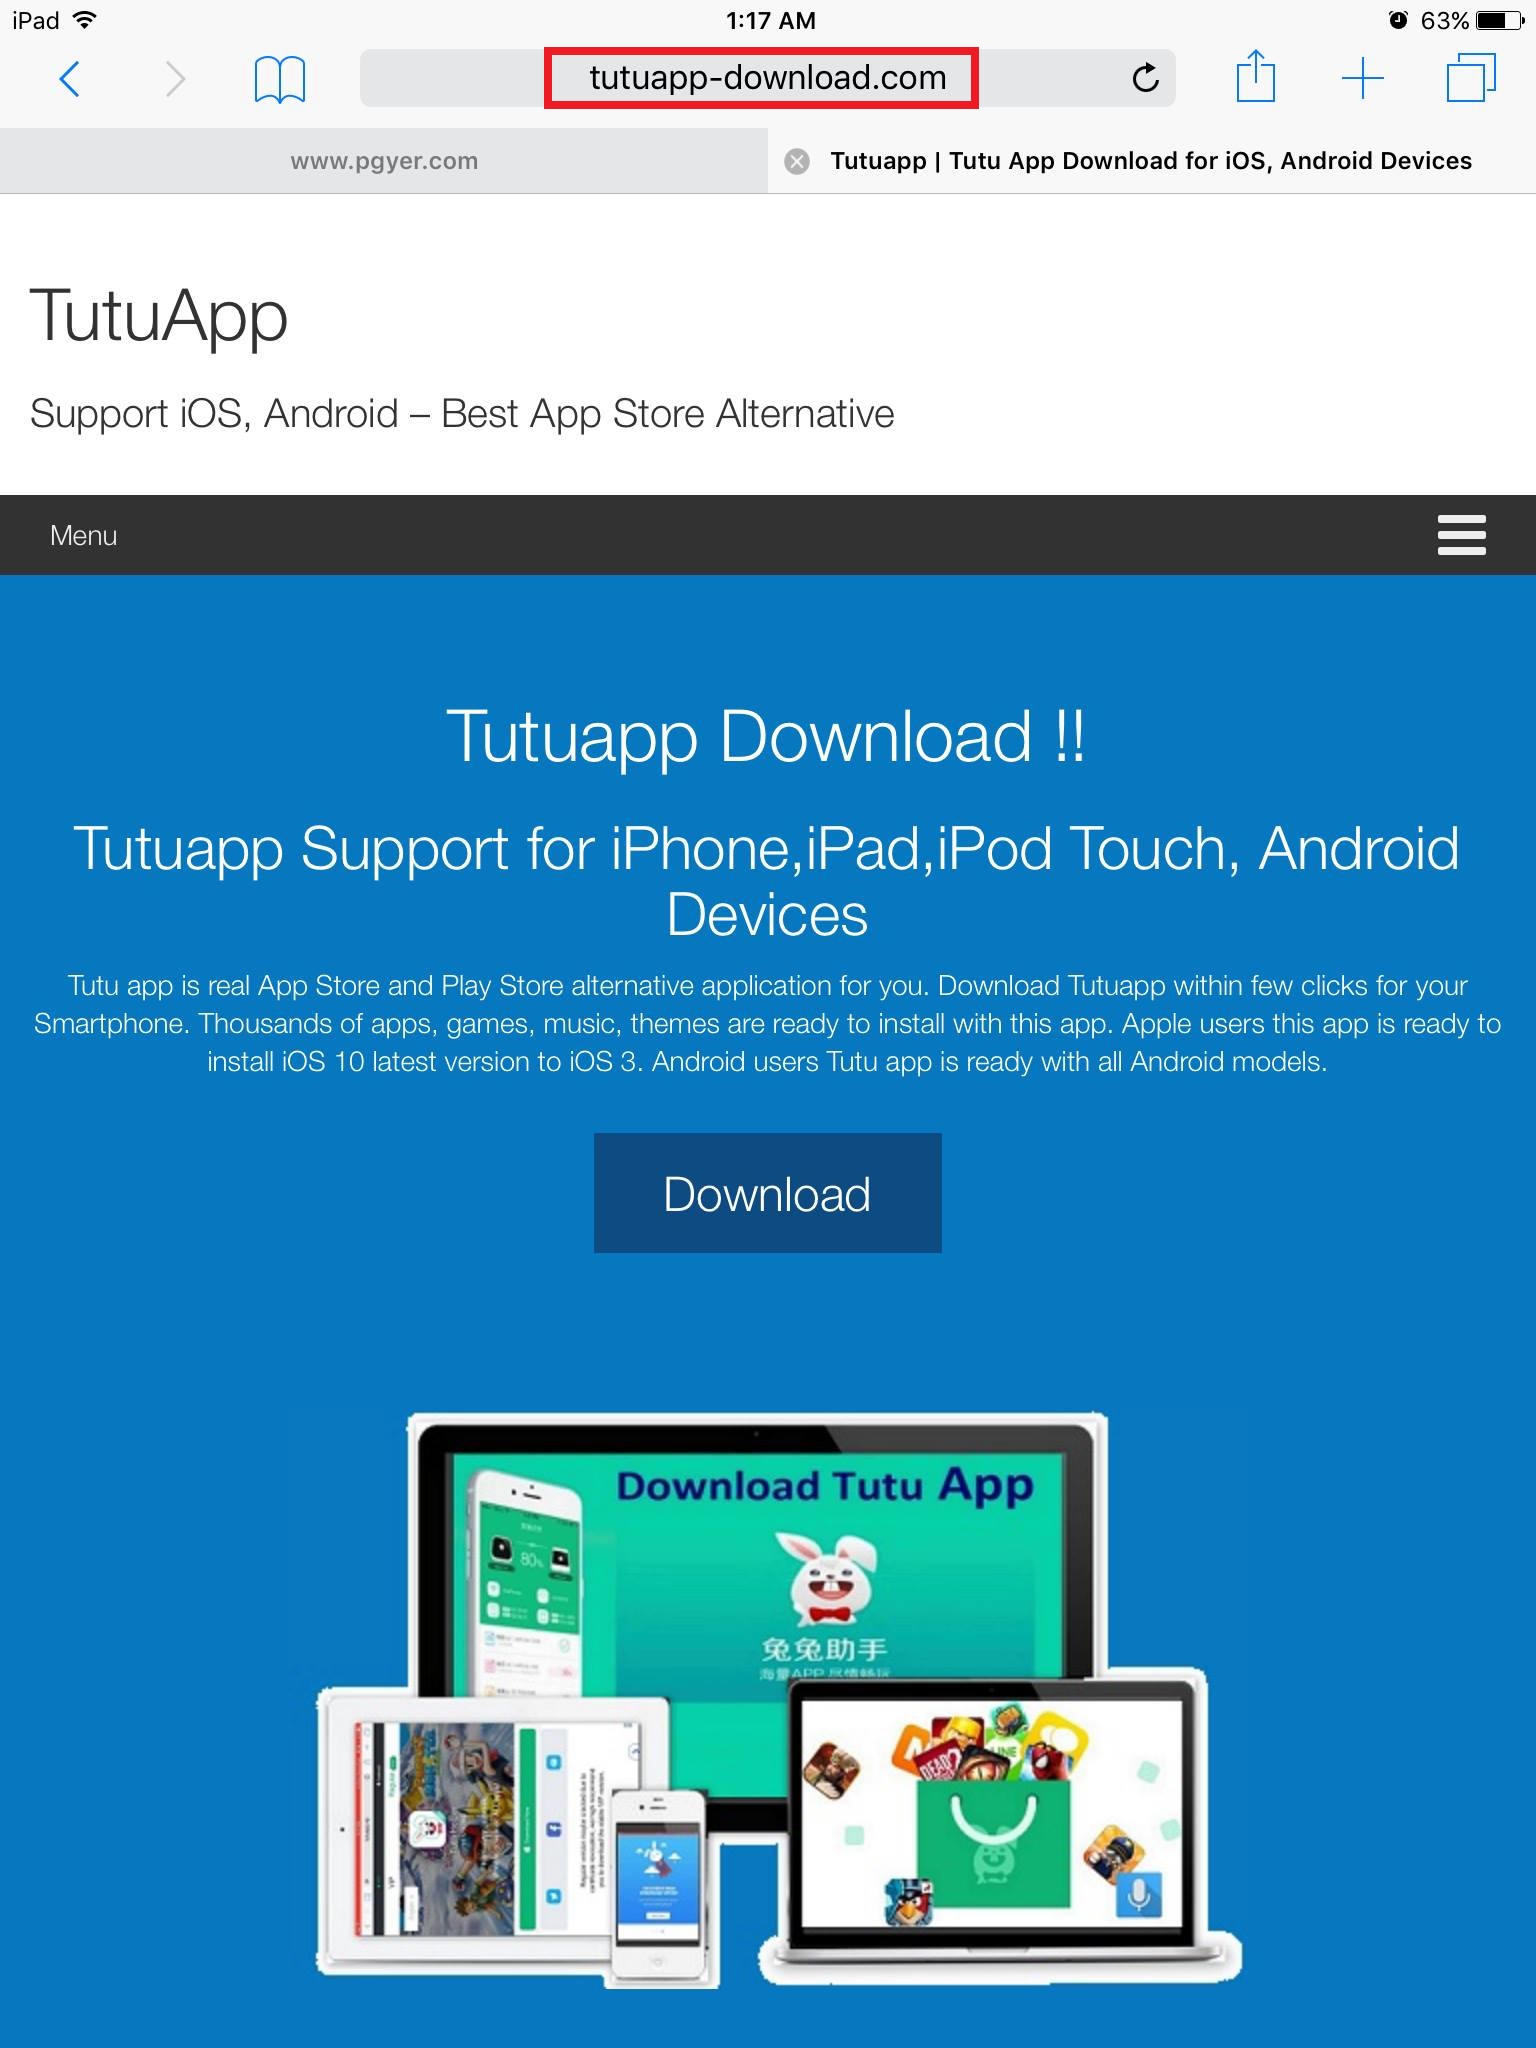 Open Safari Browser On Your Iphone Ipad Ipod Touch And Go To Tutuapp Download Com